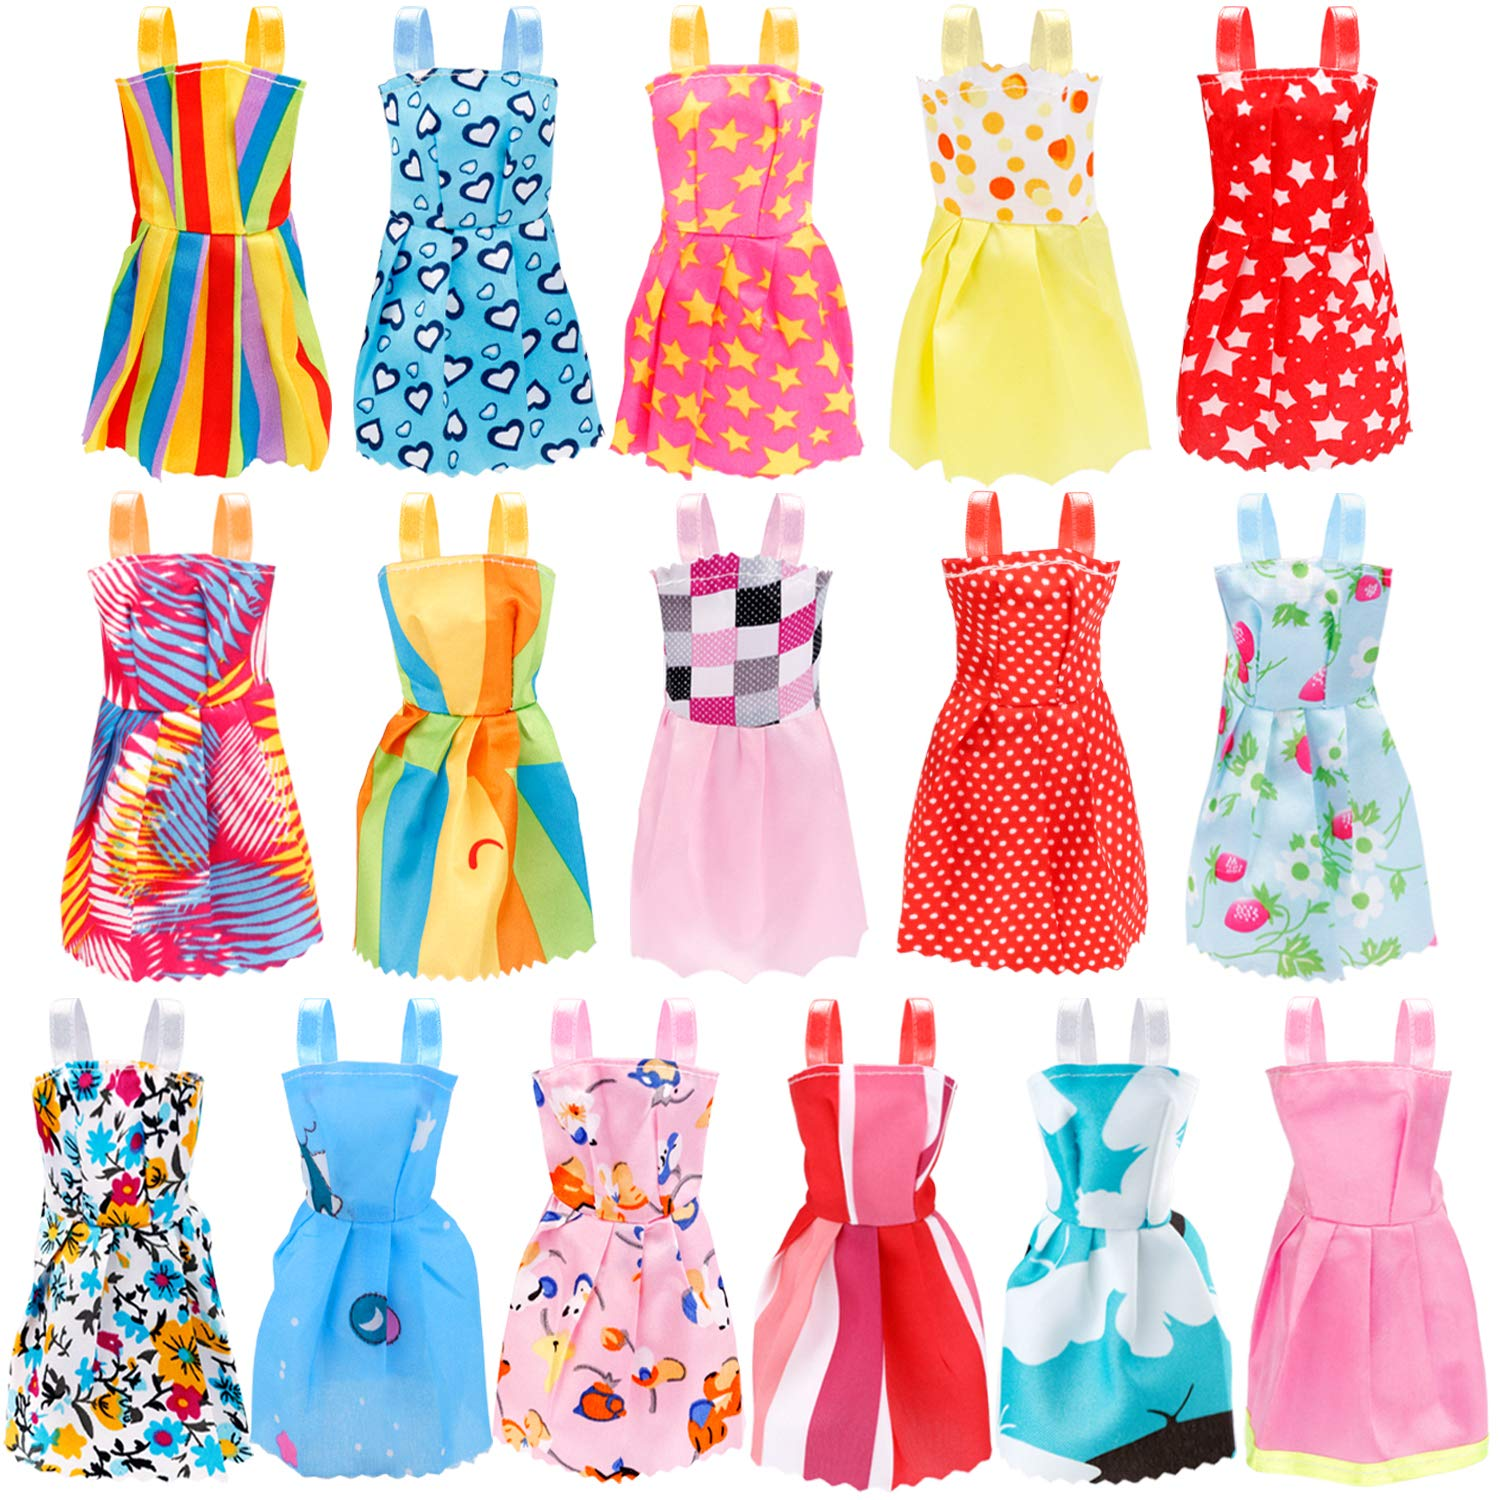 Included 18Pcs Wedding Party Outfits Clothes and 55Pcs Doll Accessories Shoes Bags Necklace Girls Gifts JANYUN 73Pcs Dolls Fashion Set for Dressing up Barbie Dolls